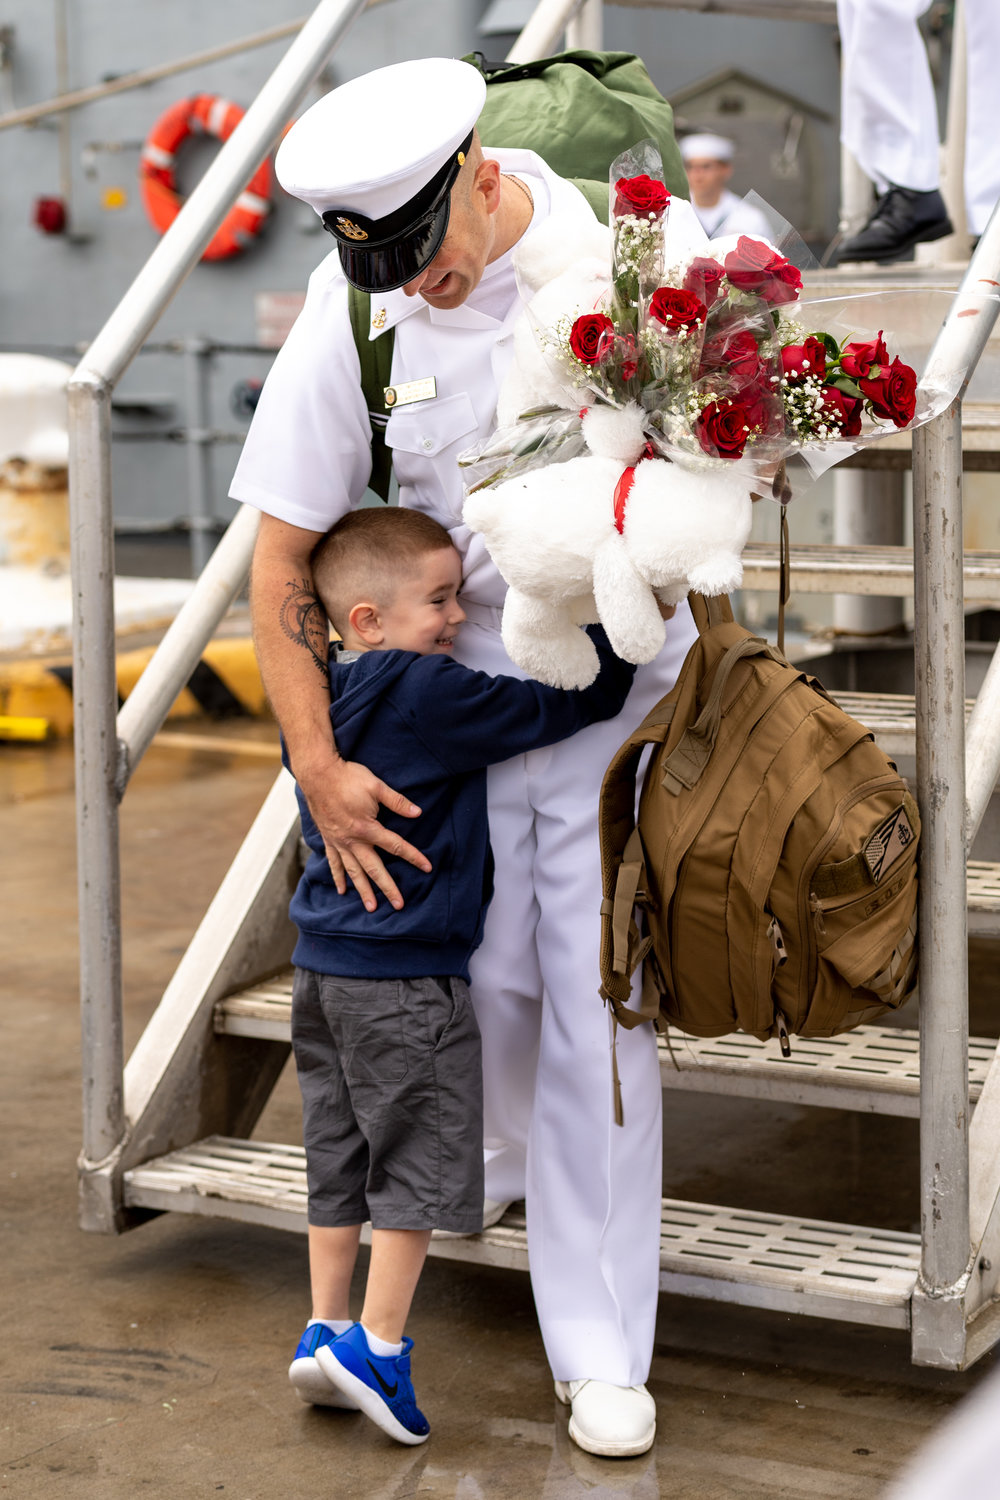 Senior Chief Culinary Specialist Timothy Whitman  is greeted by his son, Timothy Michael, after the USS Monterey returned to Naval Station Norfolk on Sunday, May 6, 2018. The USS Monterey is returning from a seven month deployment to the Navy's 5th and 6th Fleets, culminating in missile strikes against Syria in April.